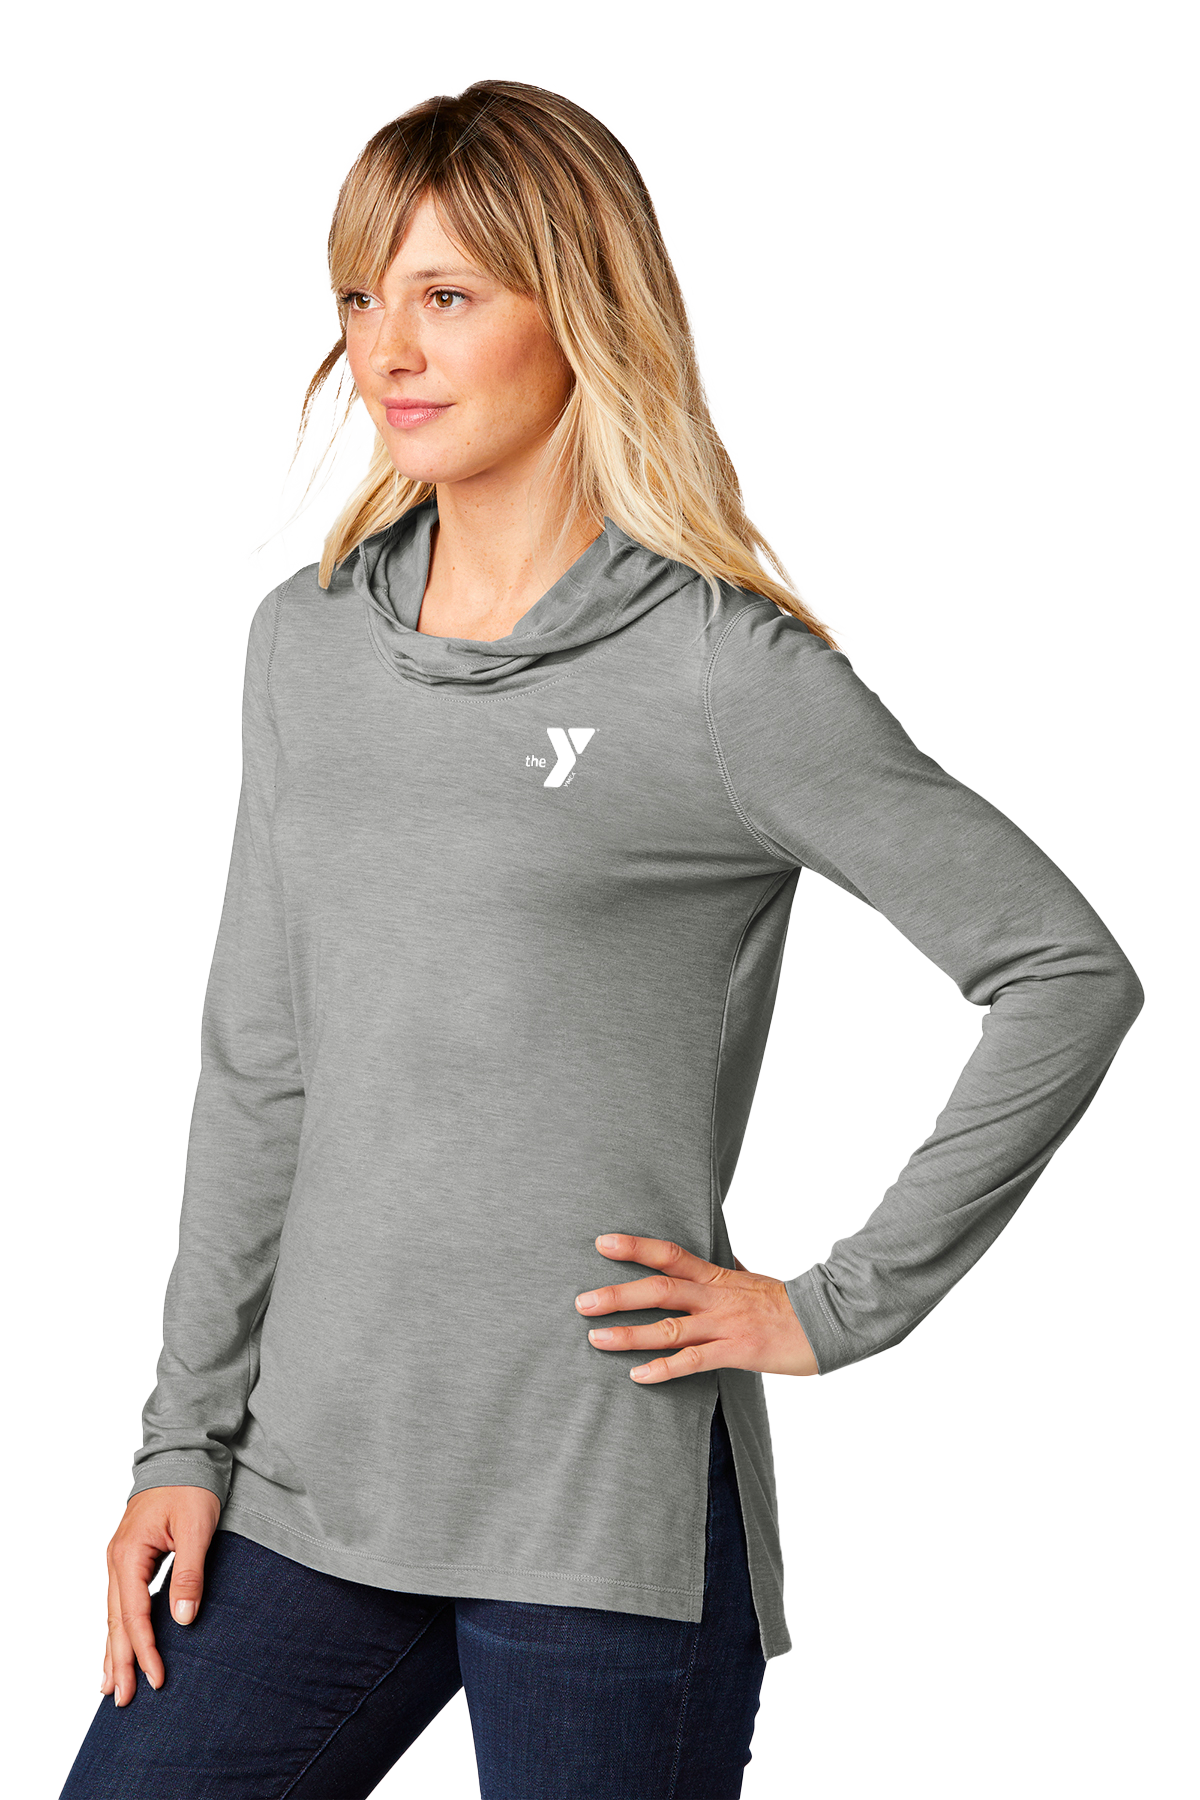 YMCA Apparel subcategory image